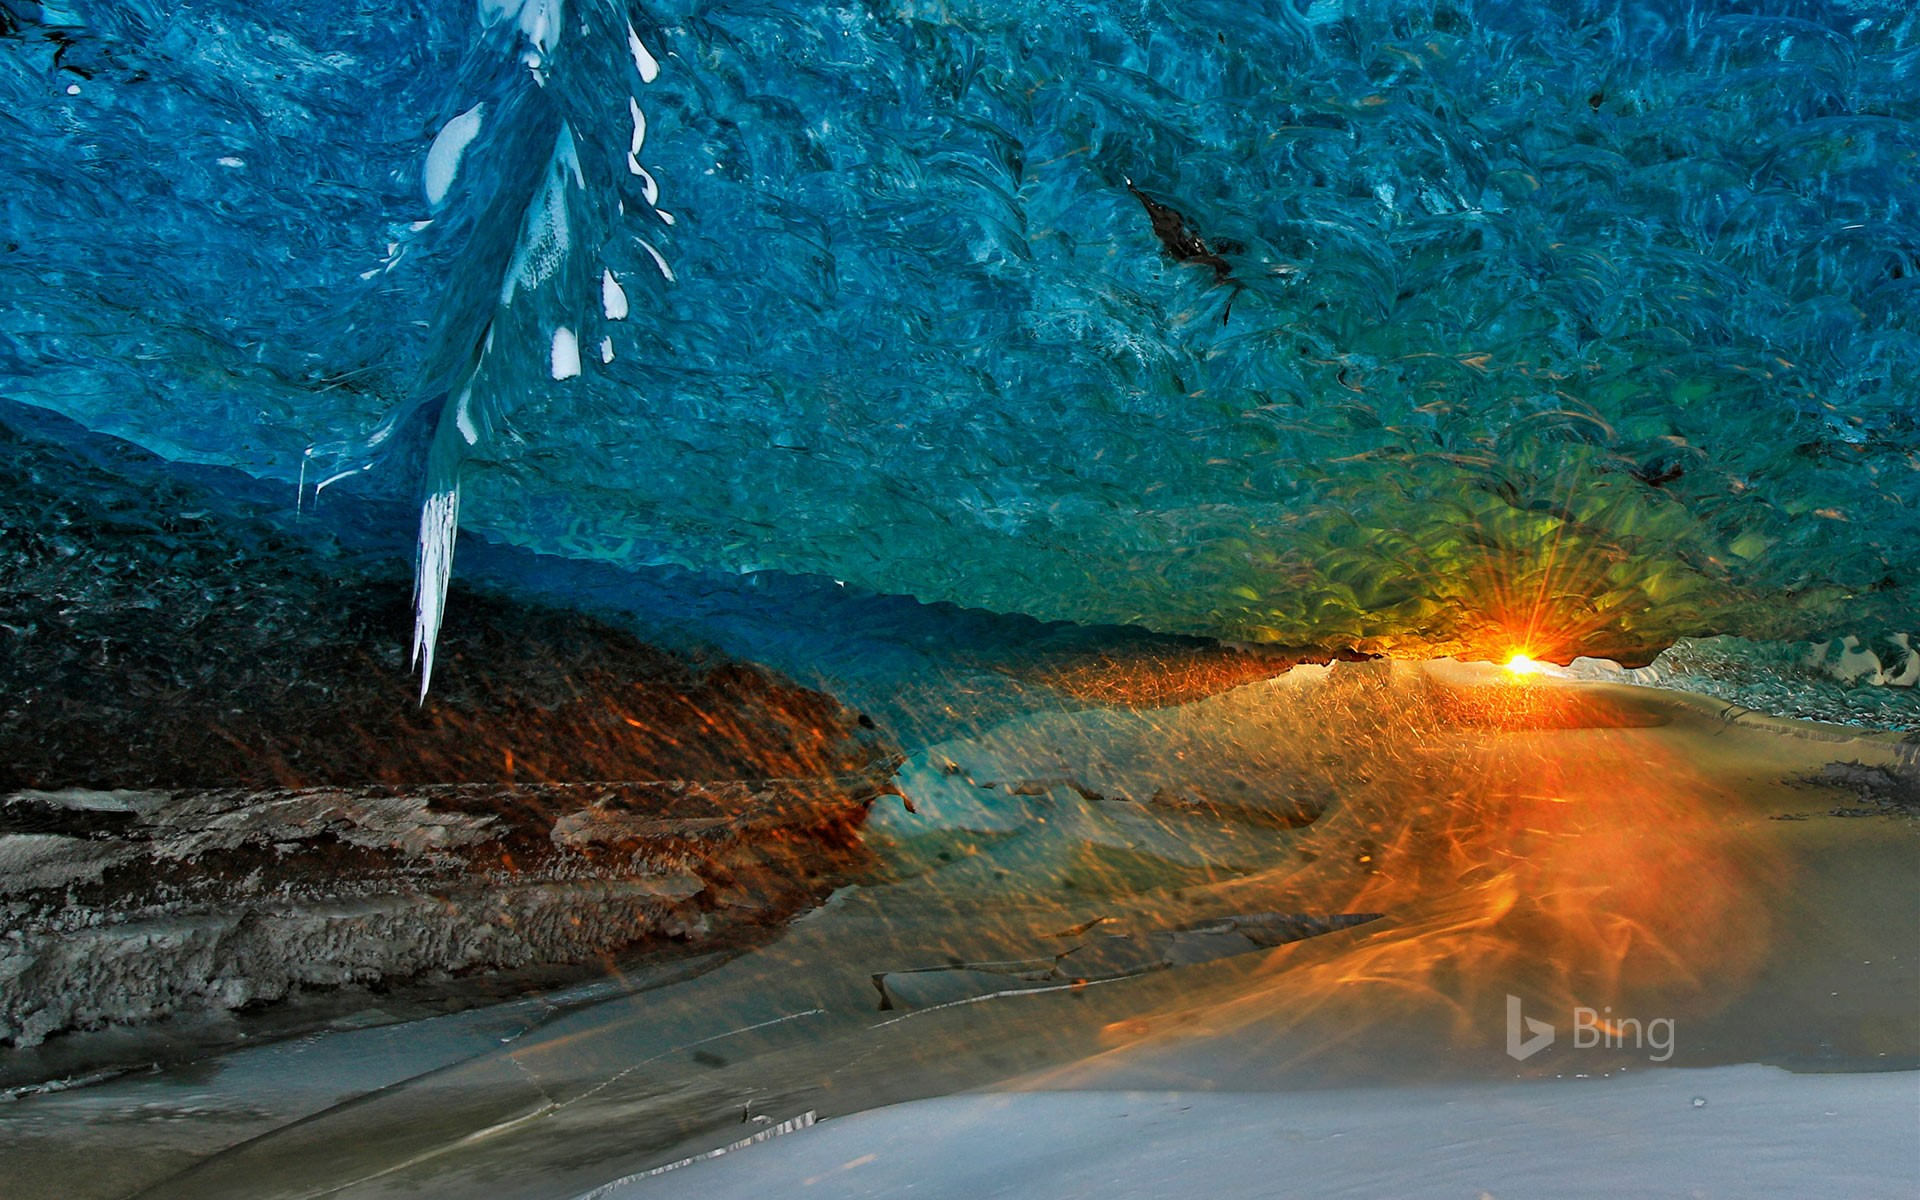 Ice cave at sunset in Vatnajökull National Park, Iceland